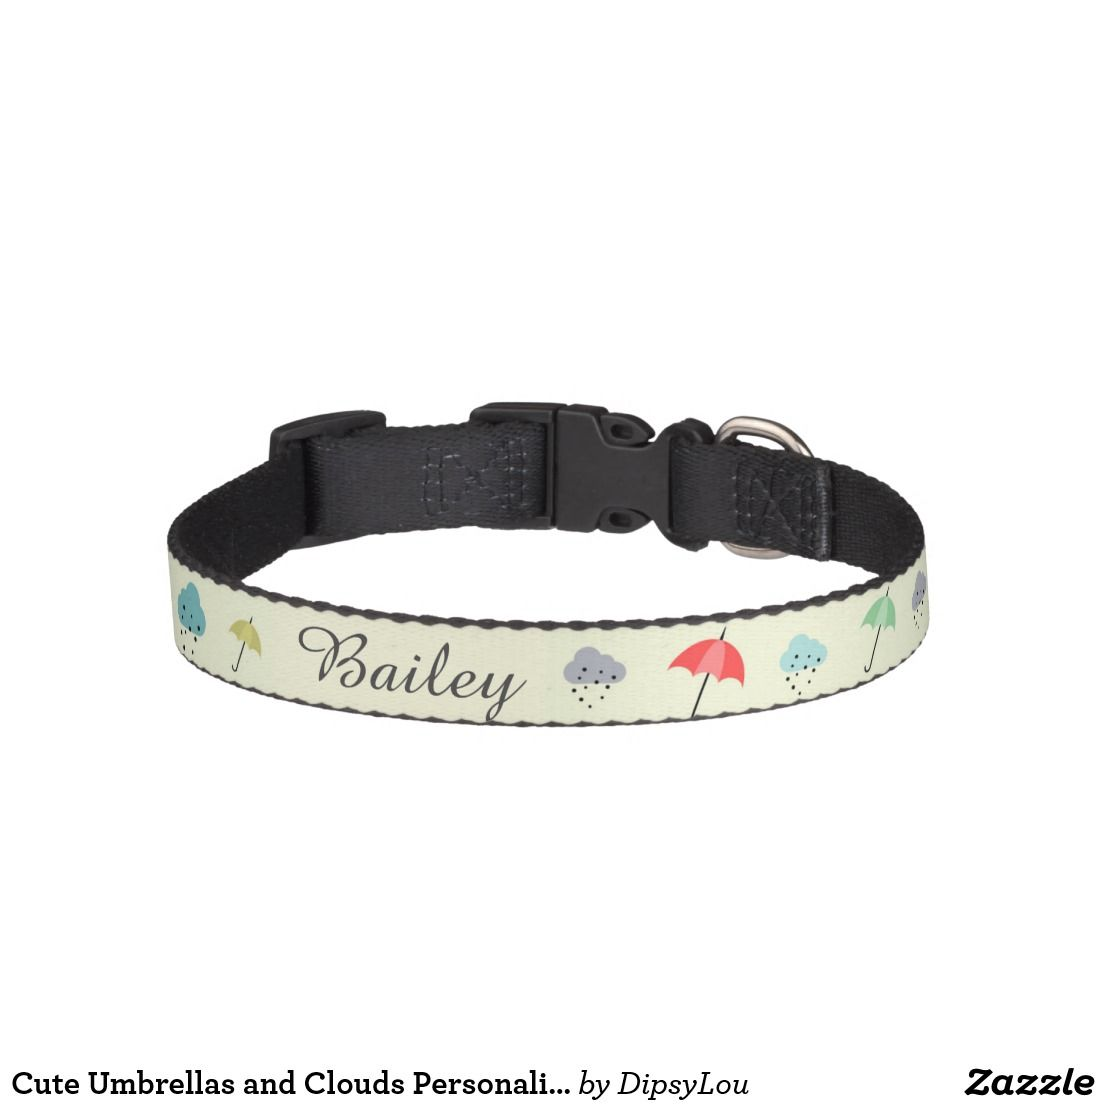 Cute Umbrellas and Clouds Personalised Pet Collar | Zazzle.com